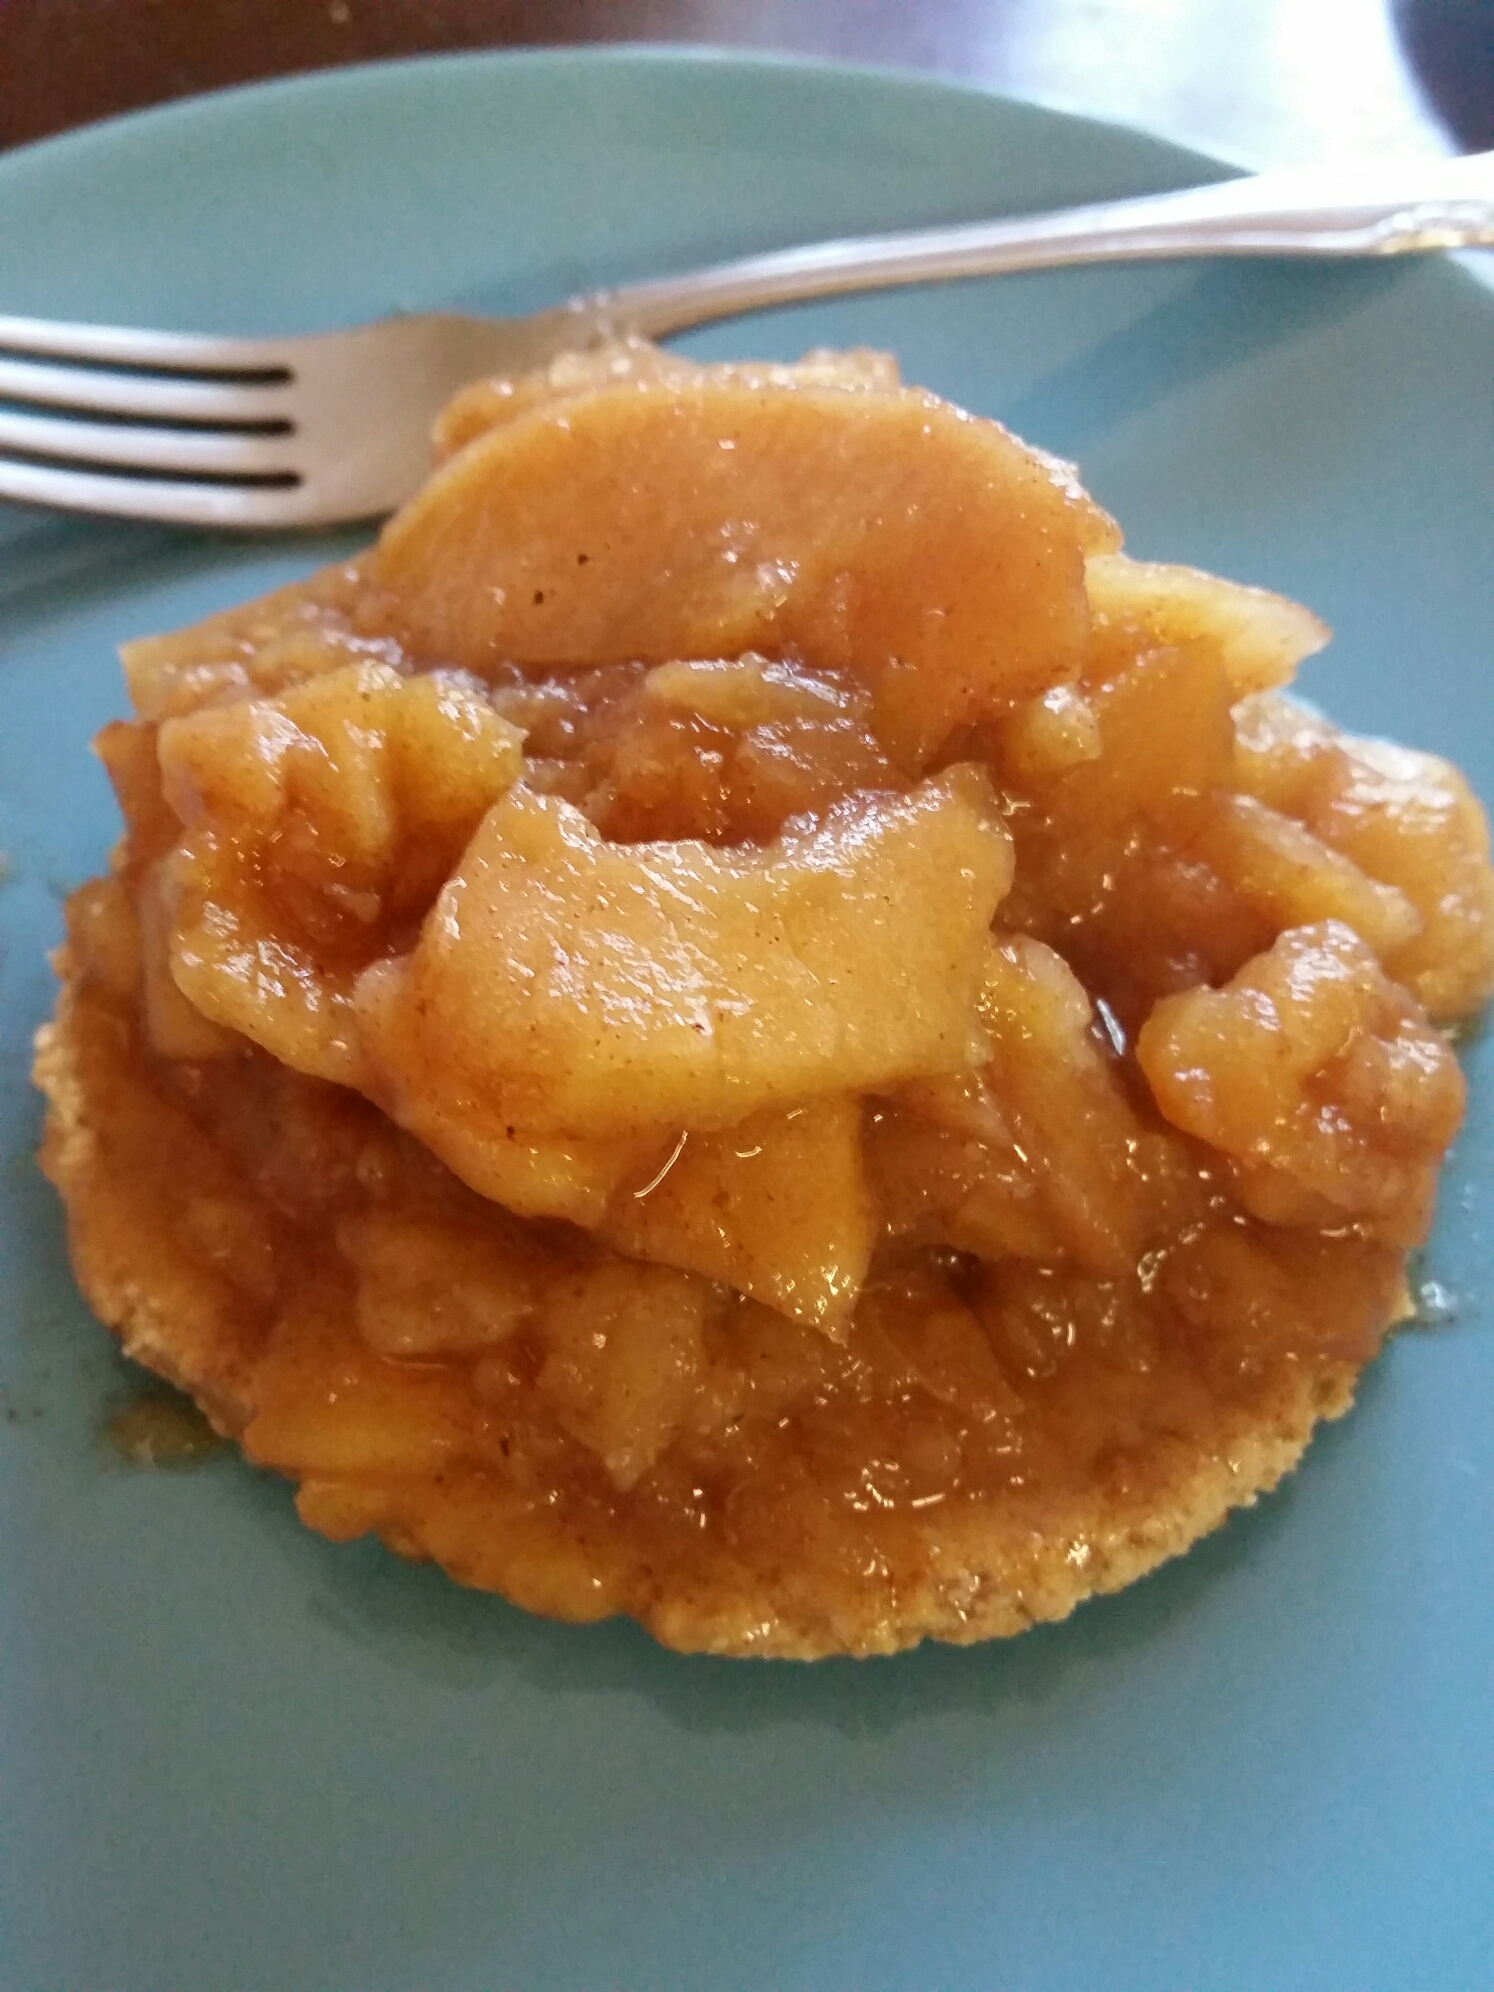 - Apple Pie Filling on a tortilla.